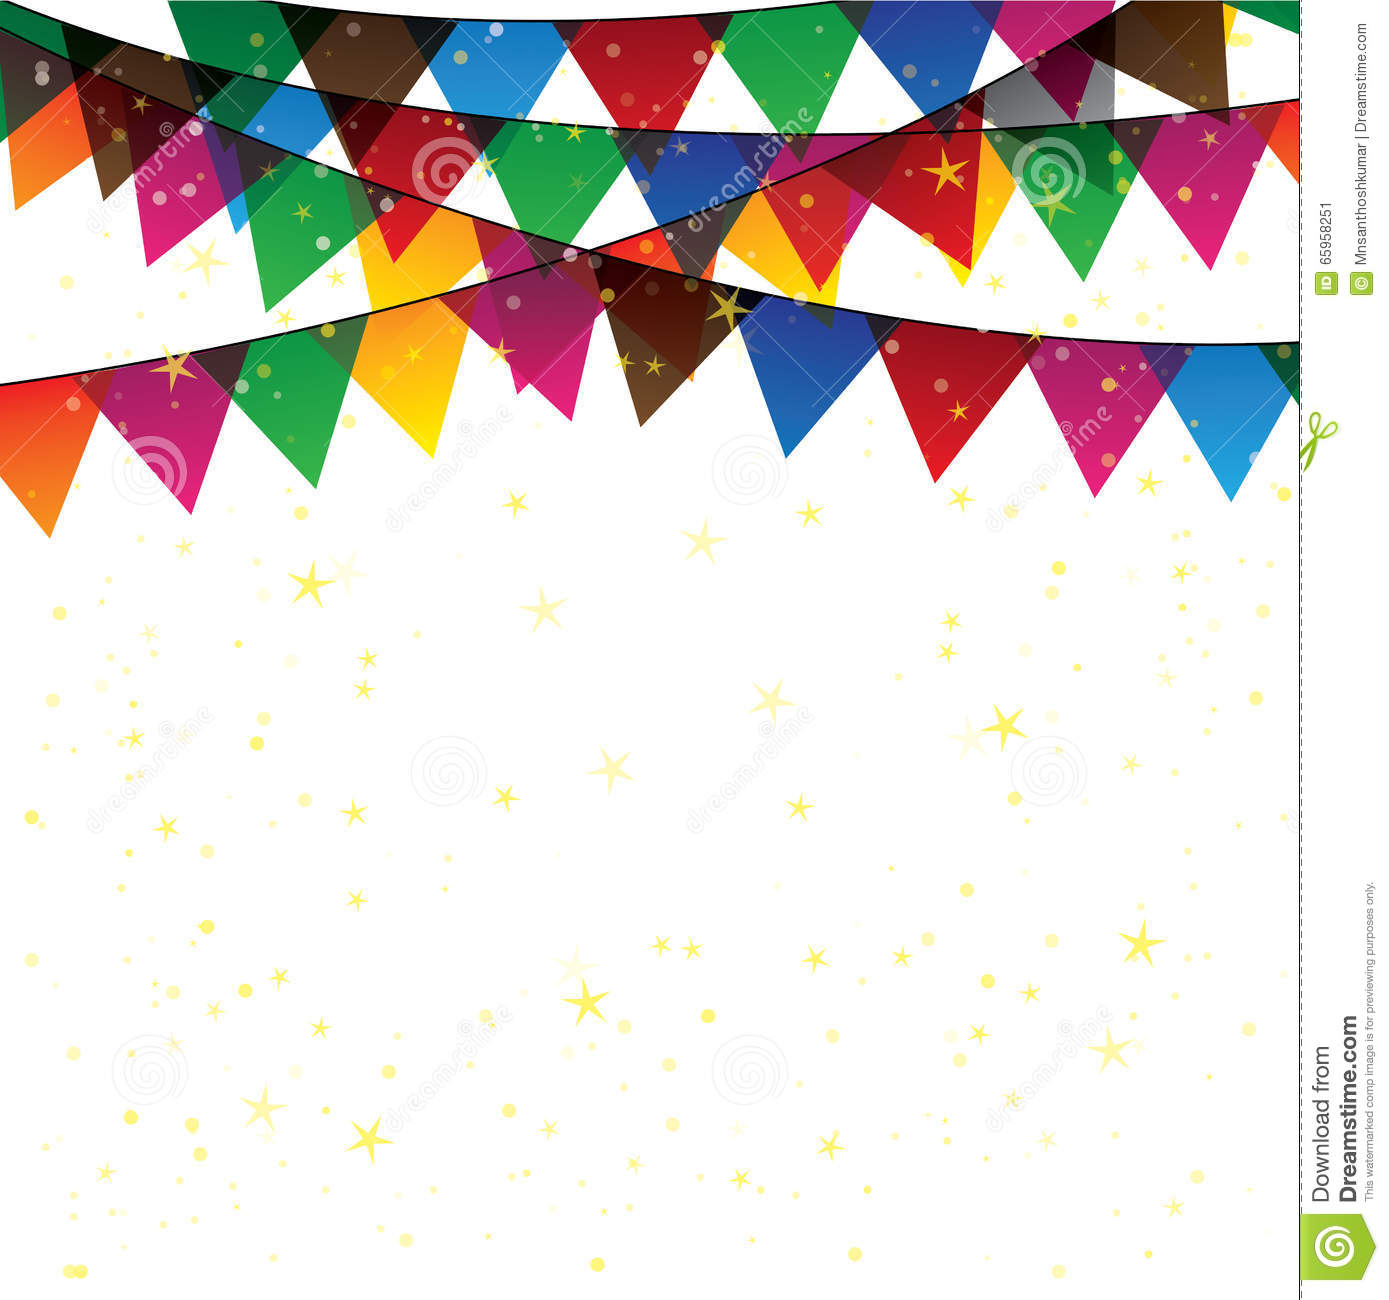 Vector bunting flags lovely celebration card with colorful paper - Bunting Celebration Colorful